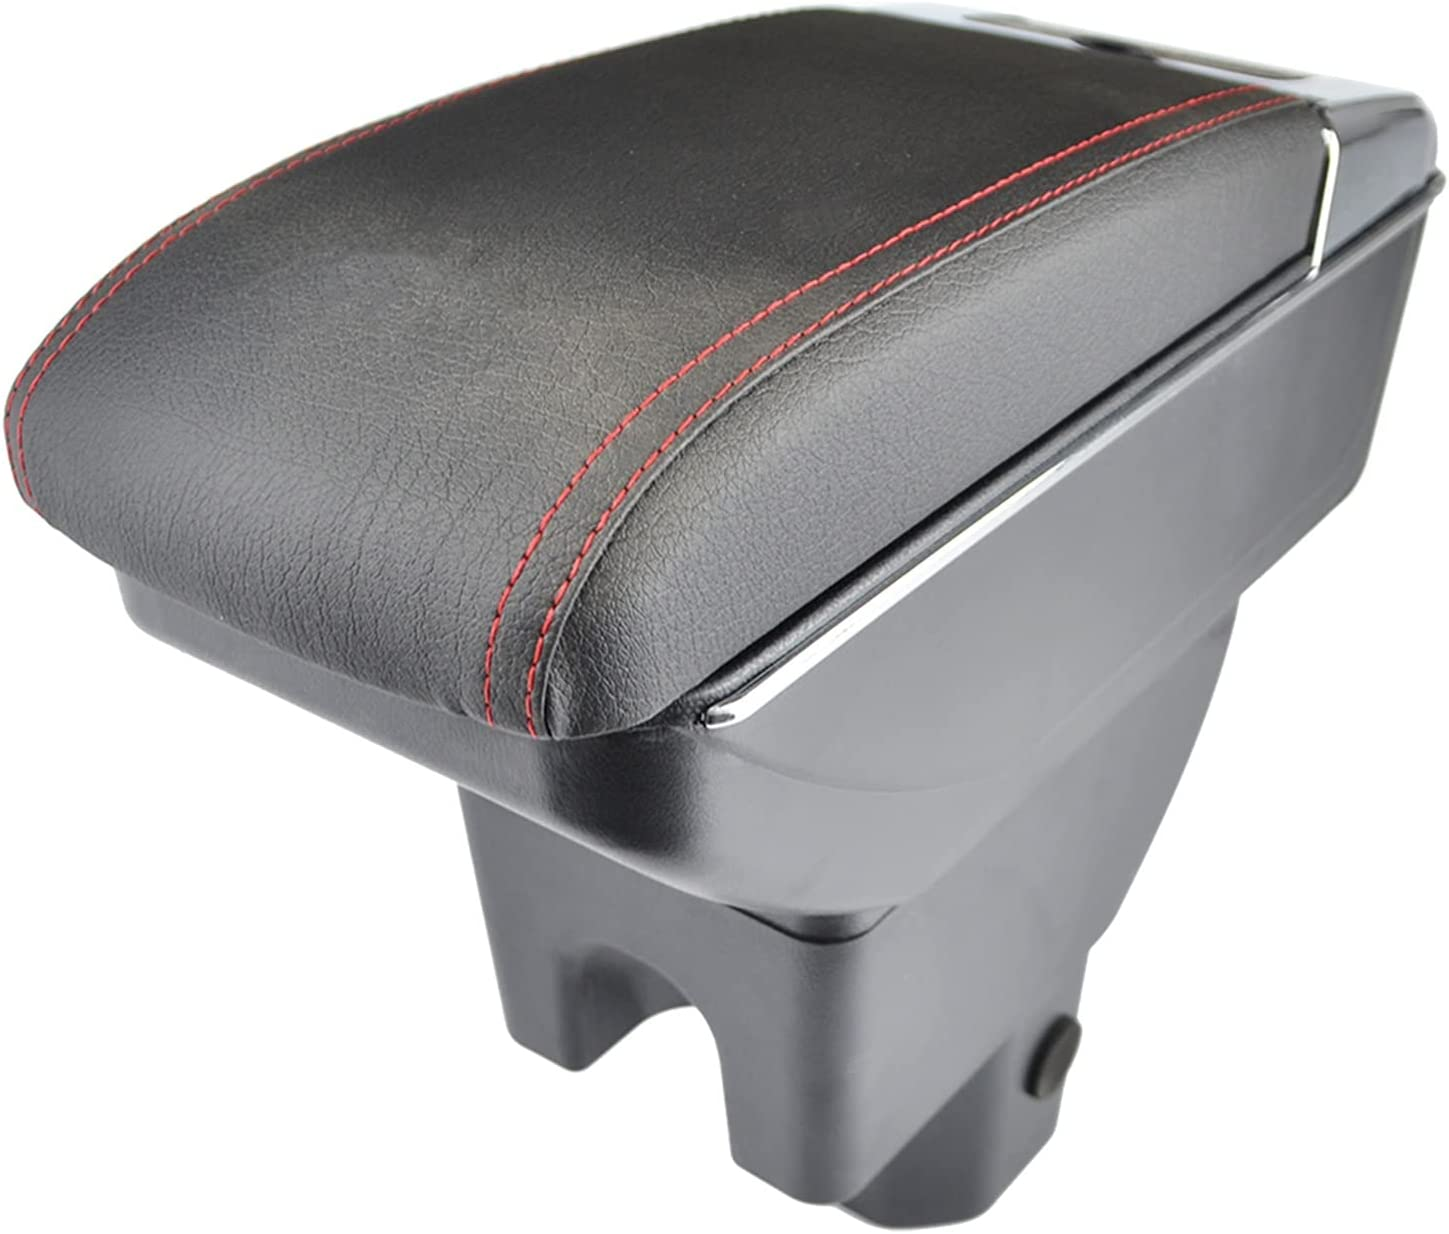 HDBH Tulsa Mall Armrest Double Storage for Latest item Leather Black Box